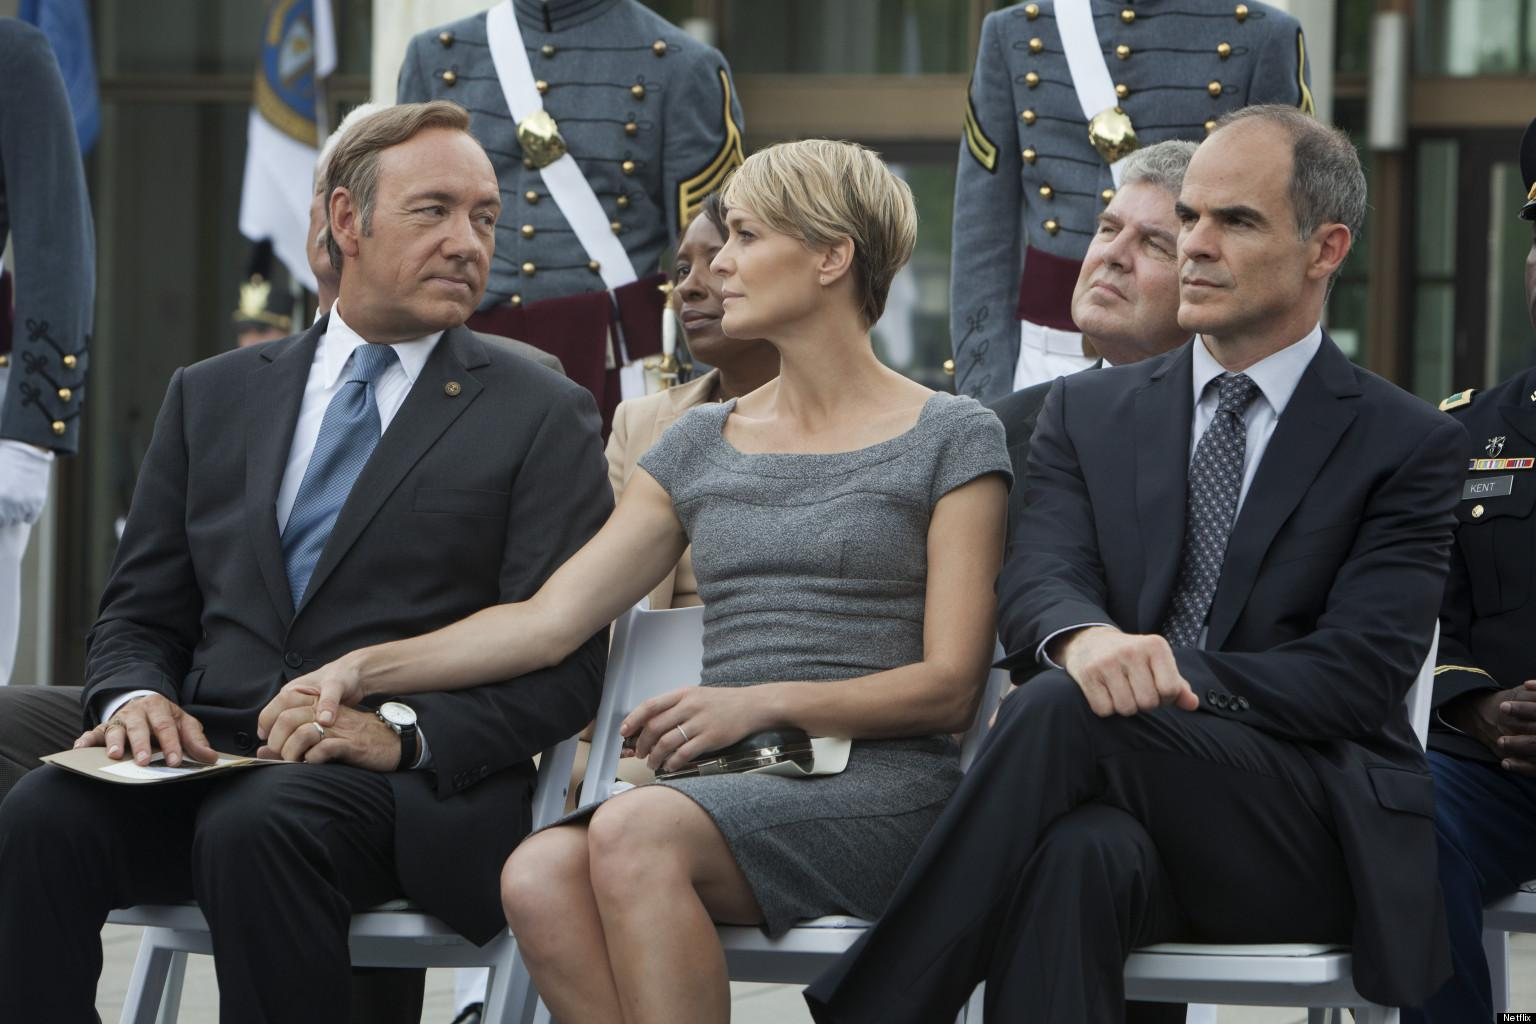 House of cards debate scene wife sexual dysfunction